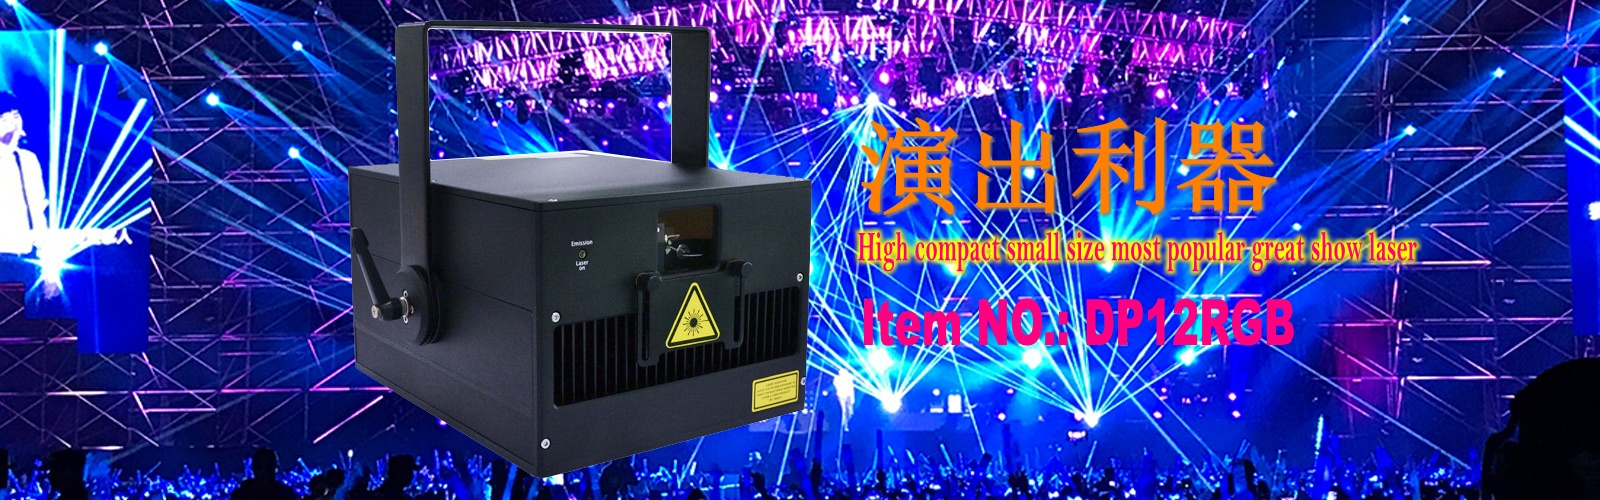 Laser Show Projectors & Galvo Scanner Systems | Very